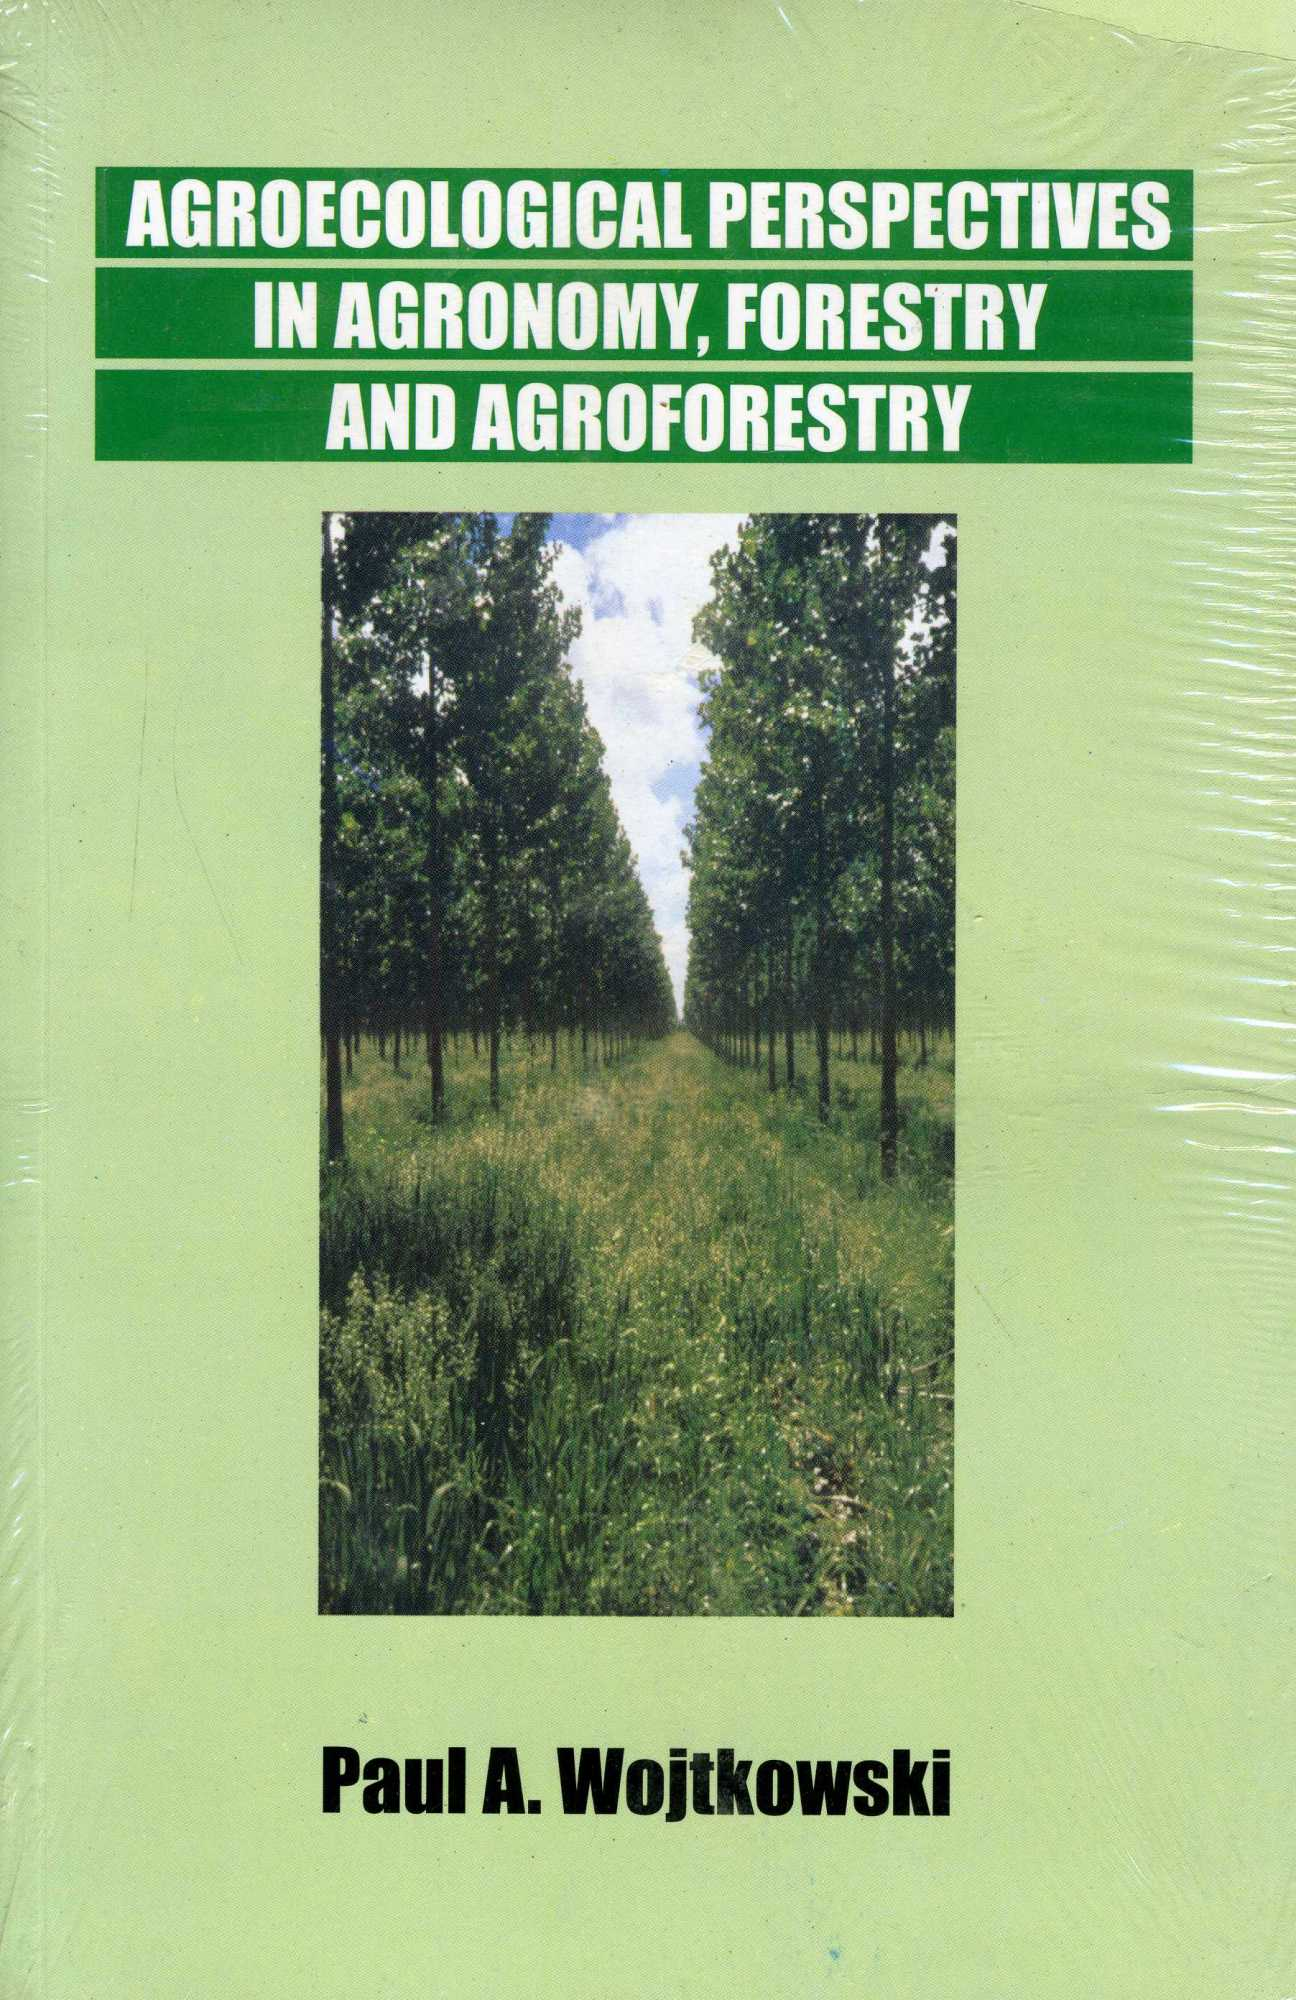 Agroecological Perspectives in Agronomy, Forestry, and Agroforestry, Wojtkowski, Paul A.